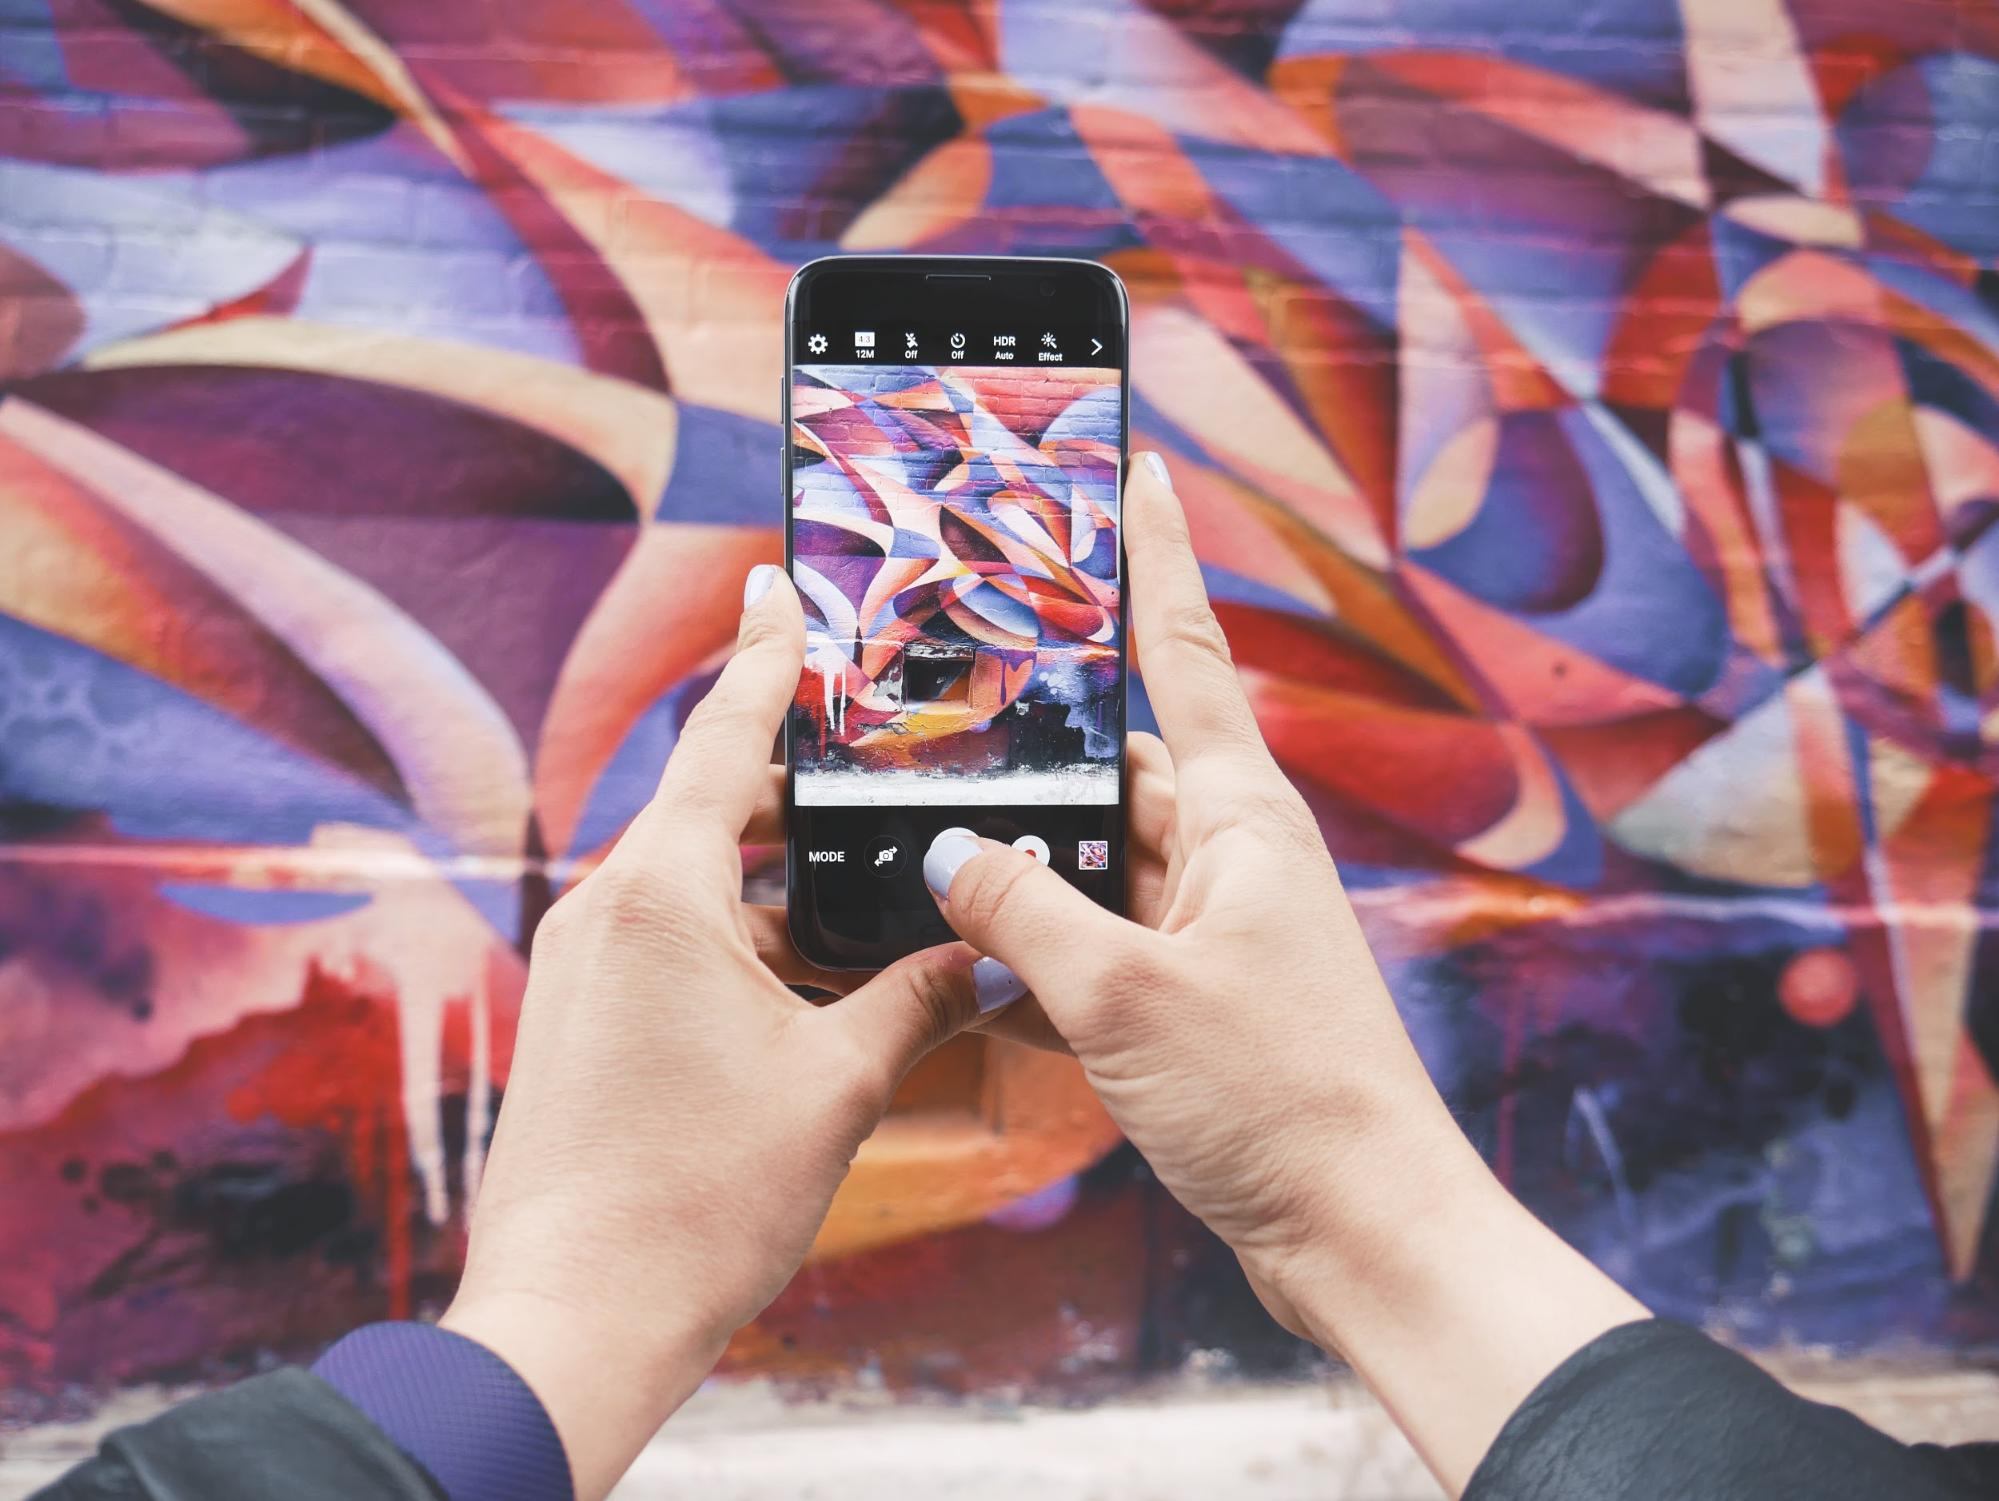 Taking a photo of graffiti